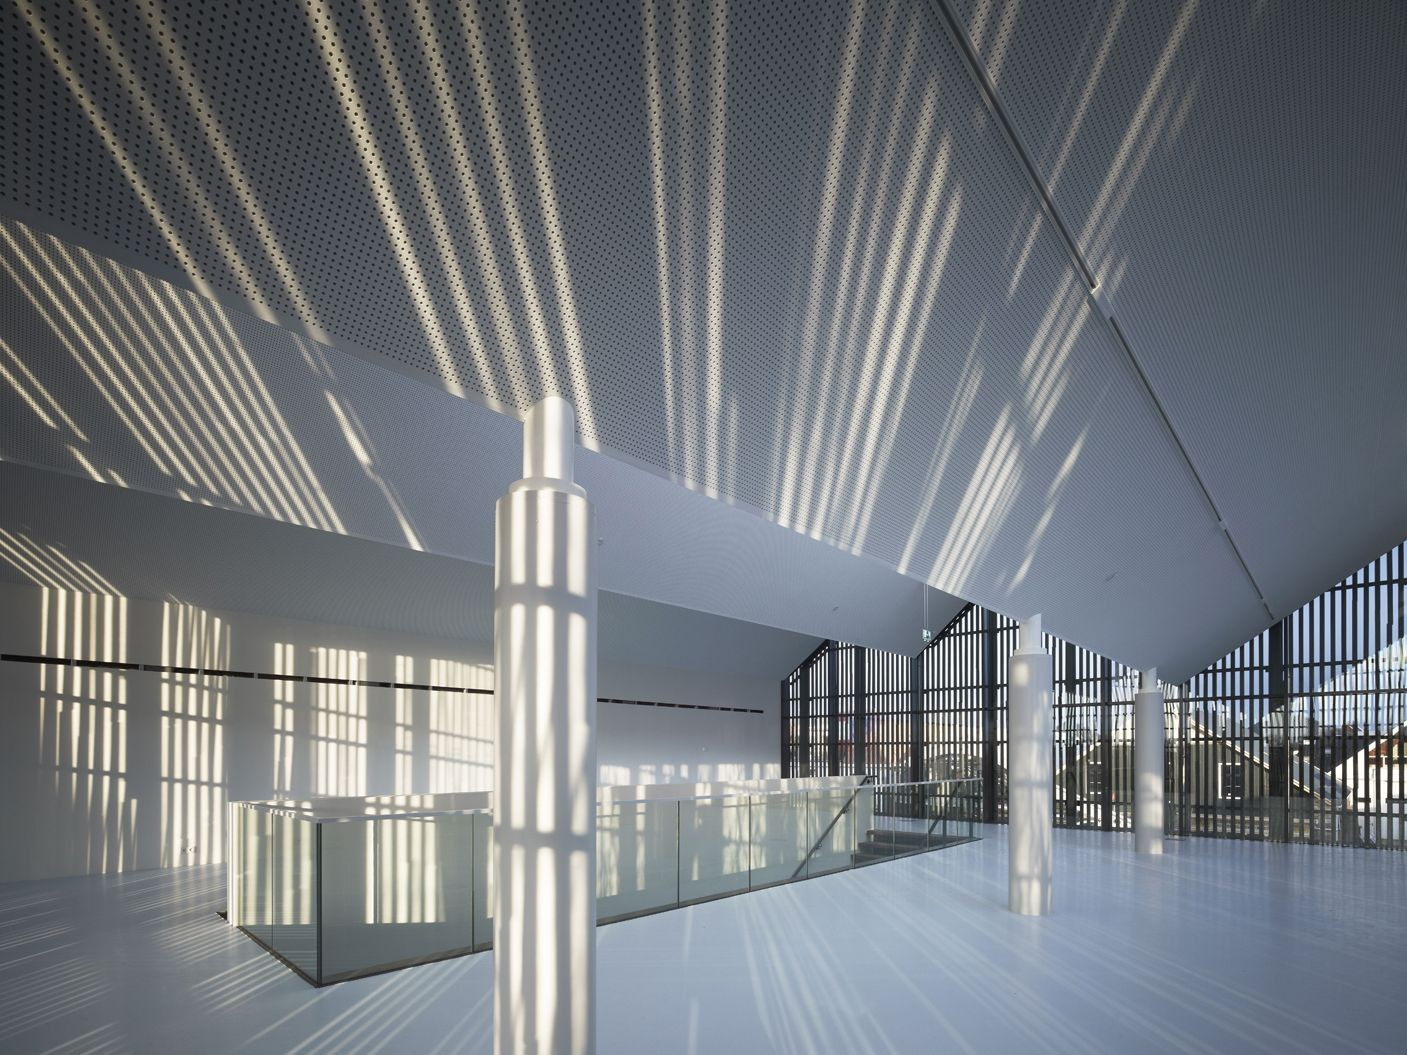 Light Matters: 7 Ways Daylight Can Make Design More Sustainable, Kaap Skil, Maritime and Beachcombers' Museum, Winner of the Daylight Award 2012. Image Courtesy of Mecanoo Architecten